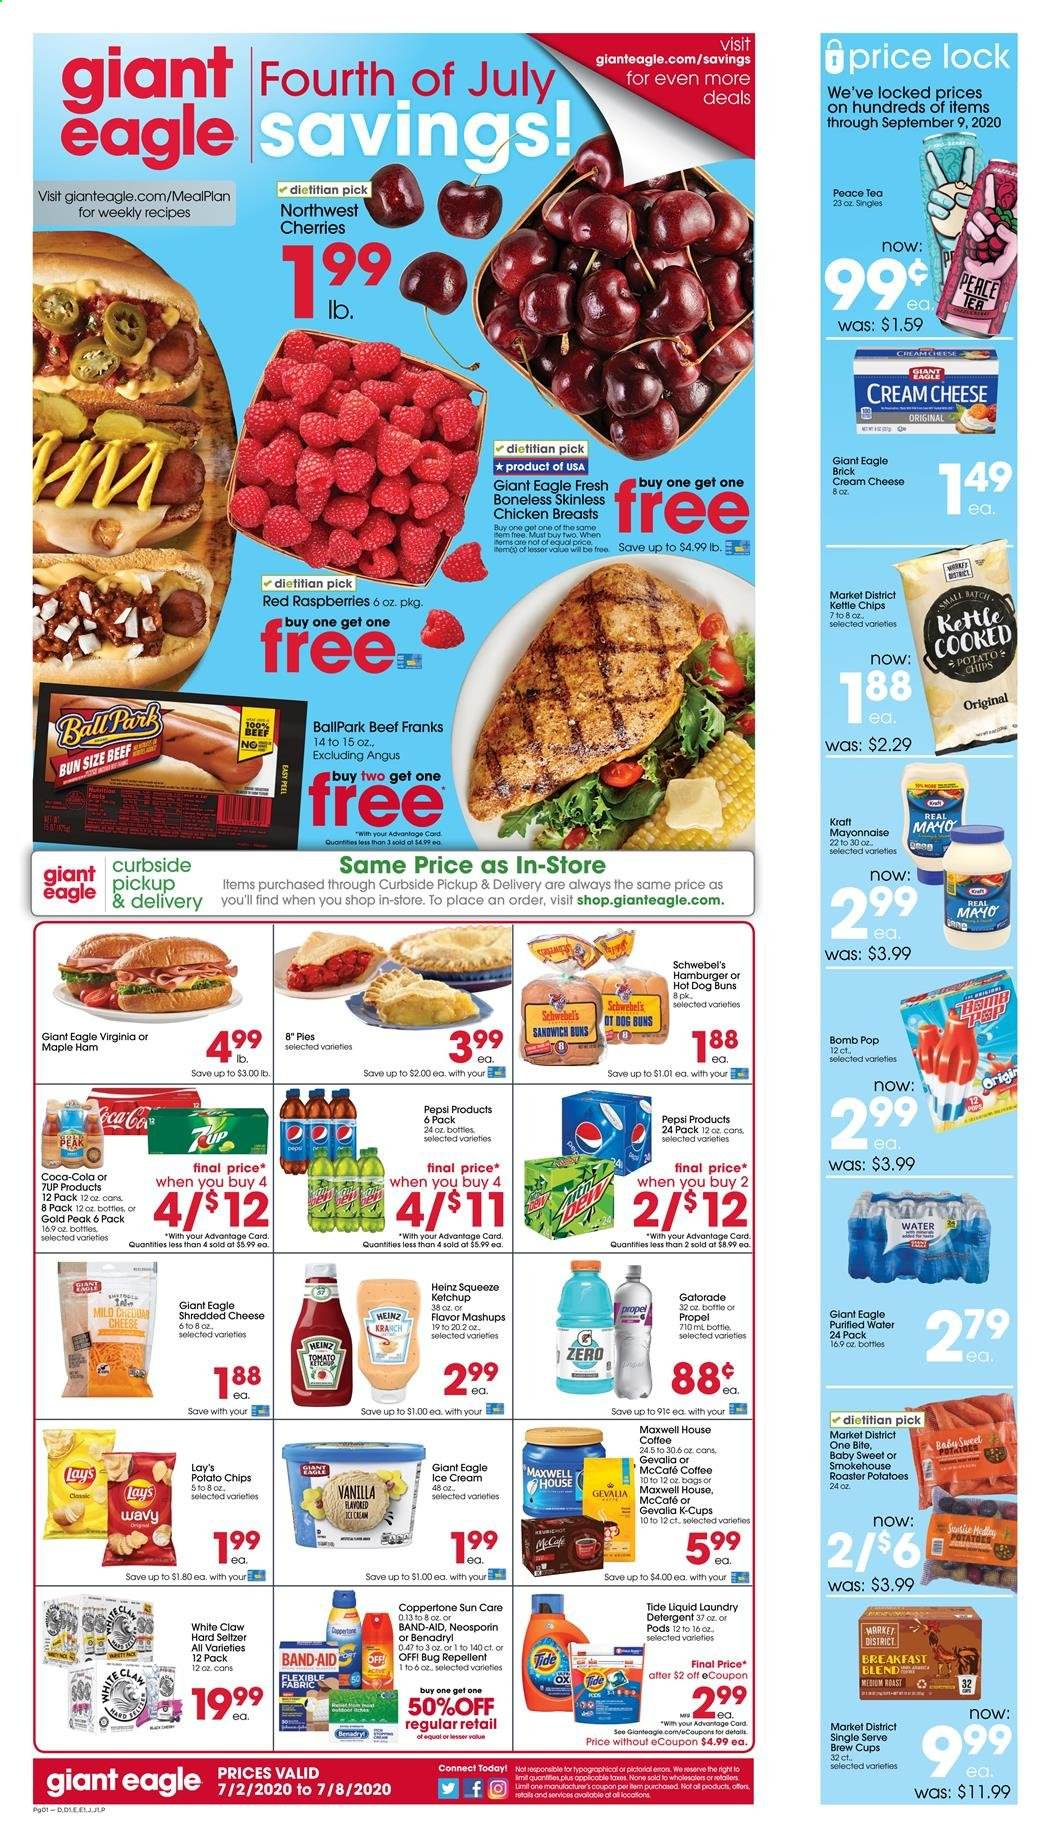 Giant Eagle Flyer  - 07.02.2020 - 07.08.2020. Page 1.